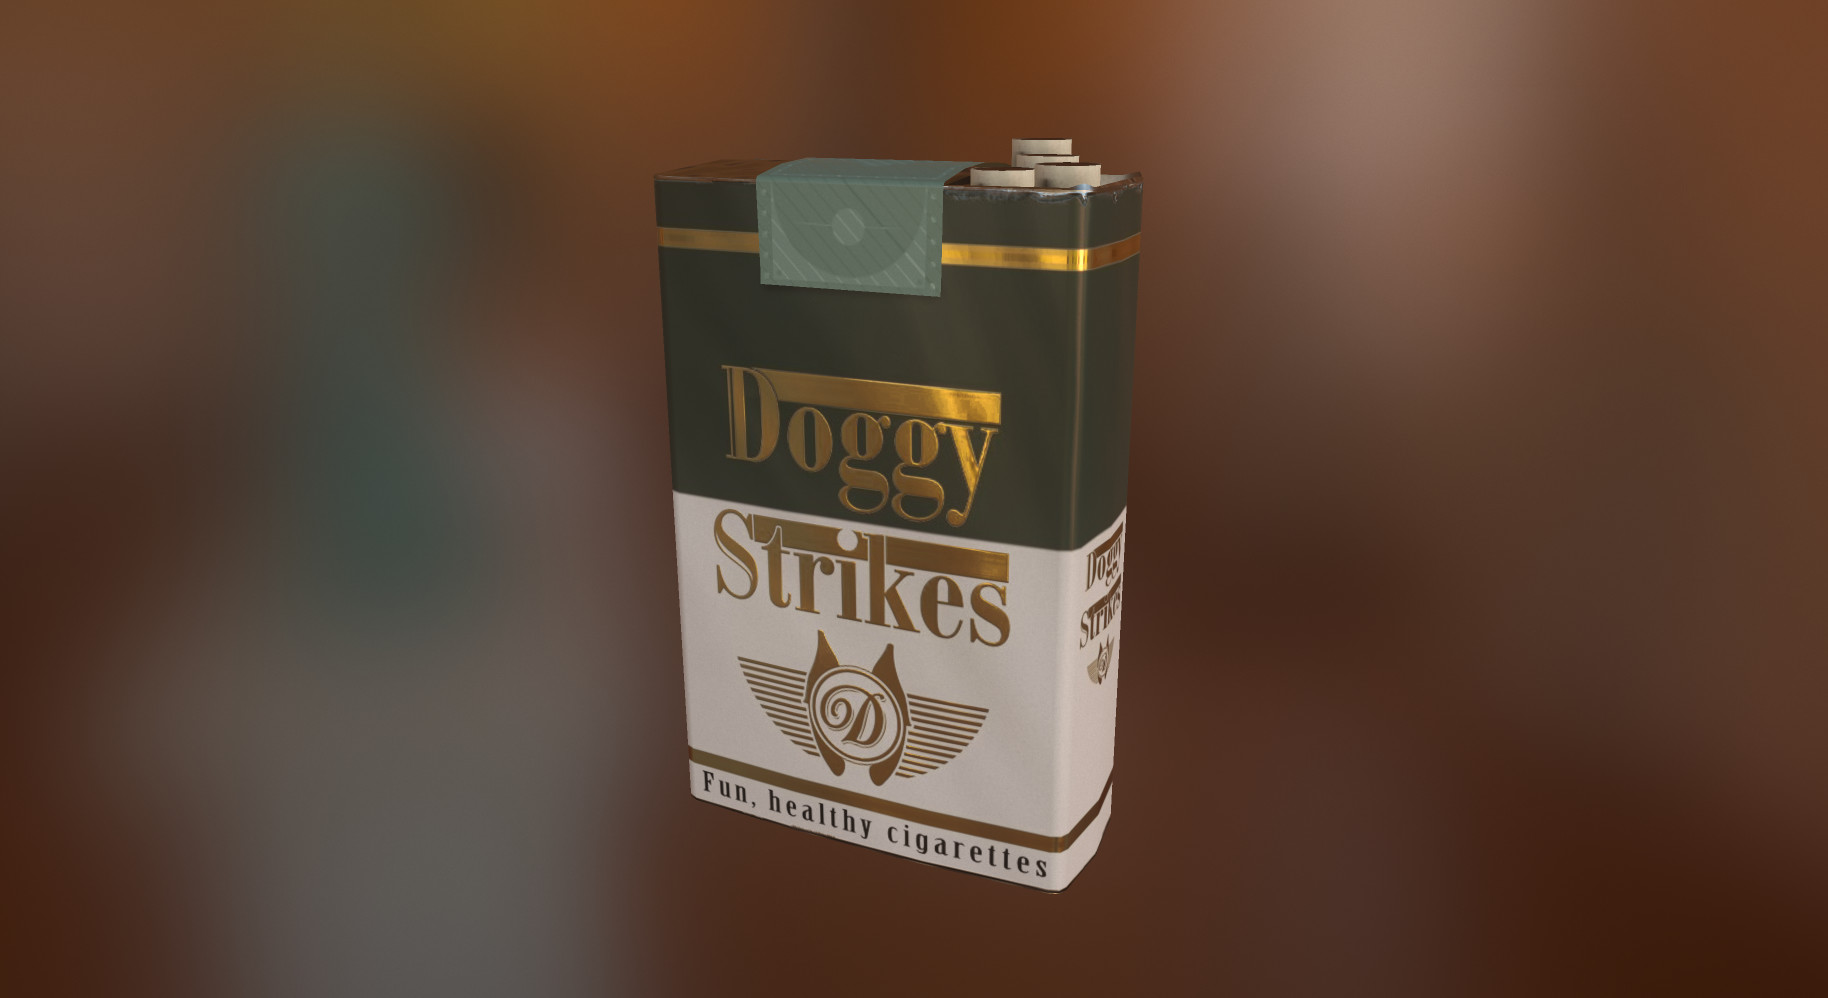 Final version of the 'Doggy Strikes' cigarette pack rendered in Marmoset